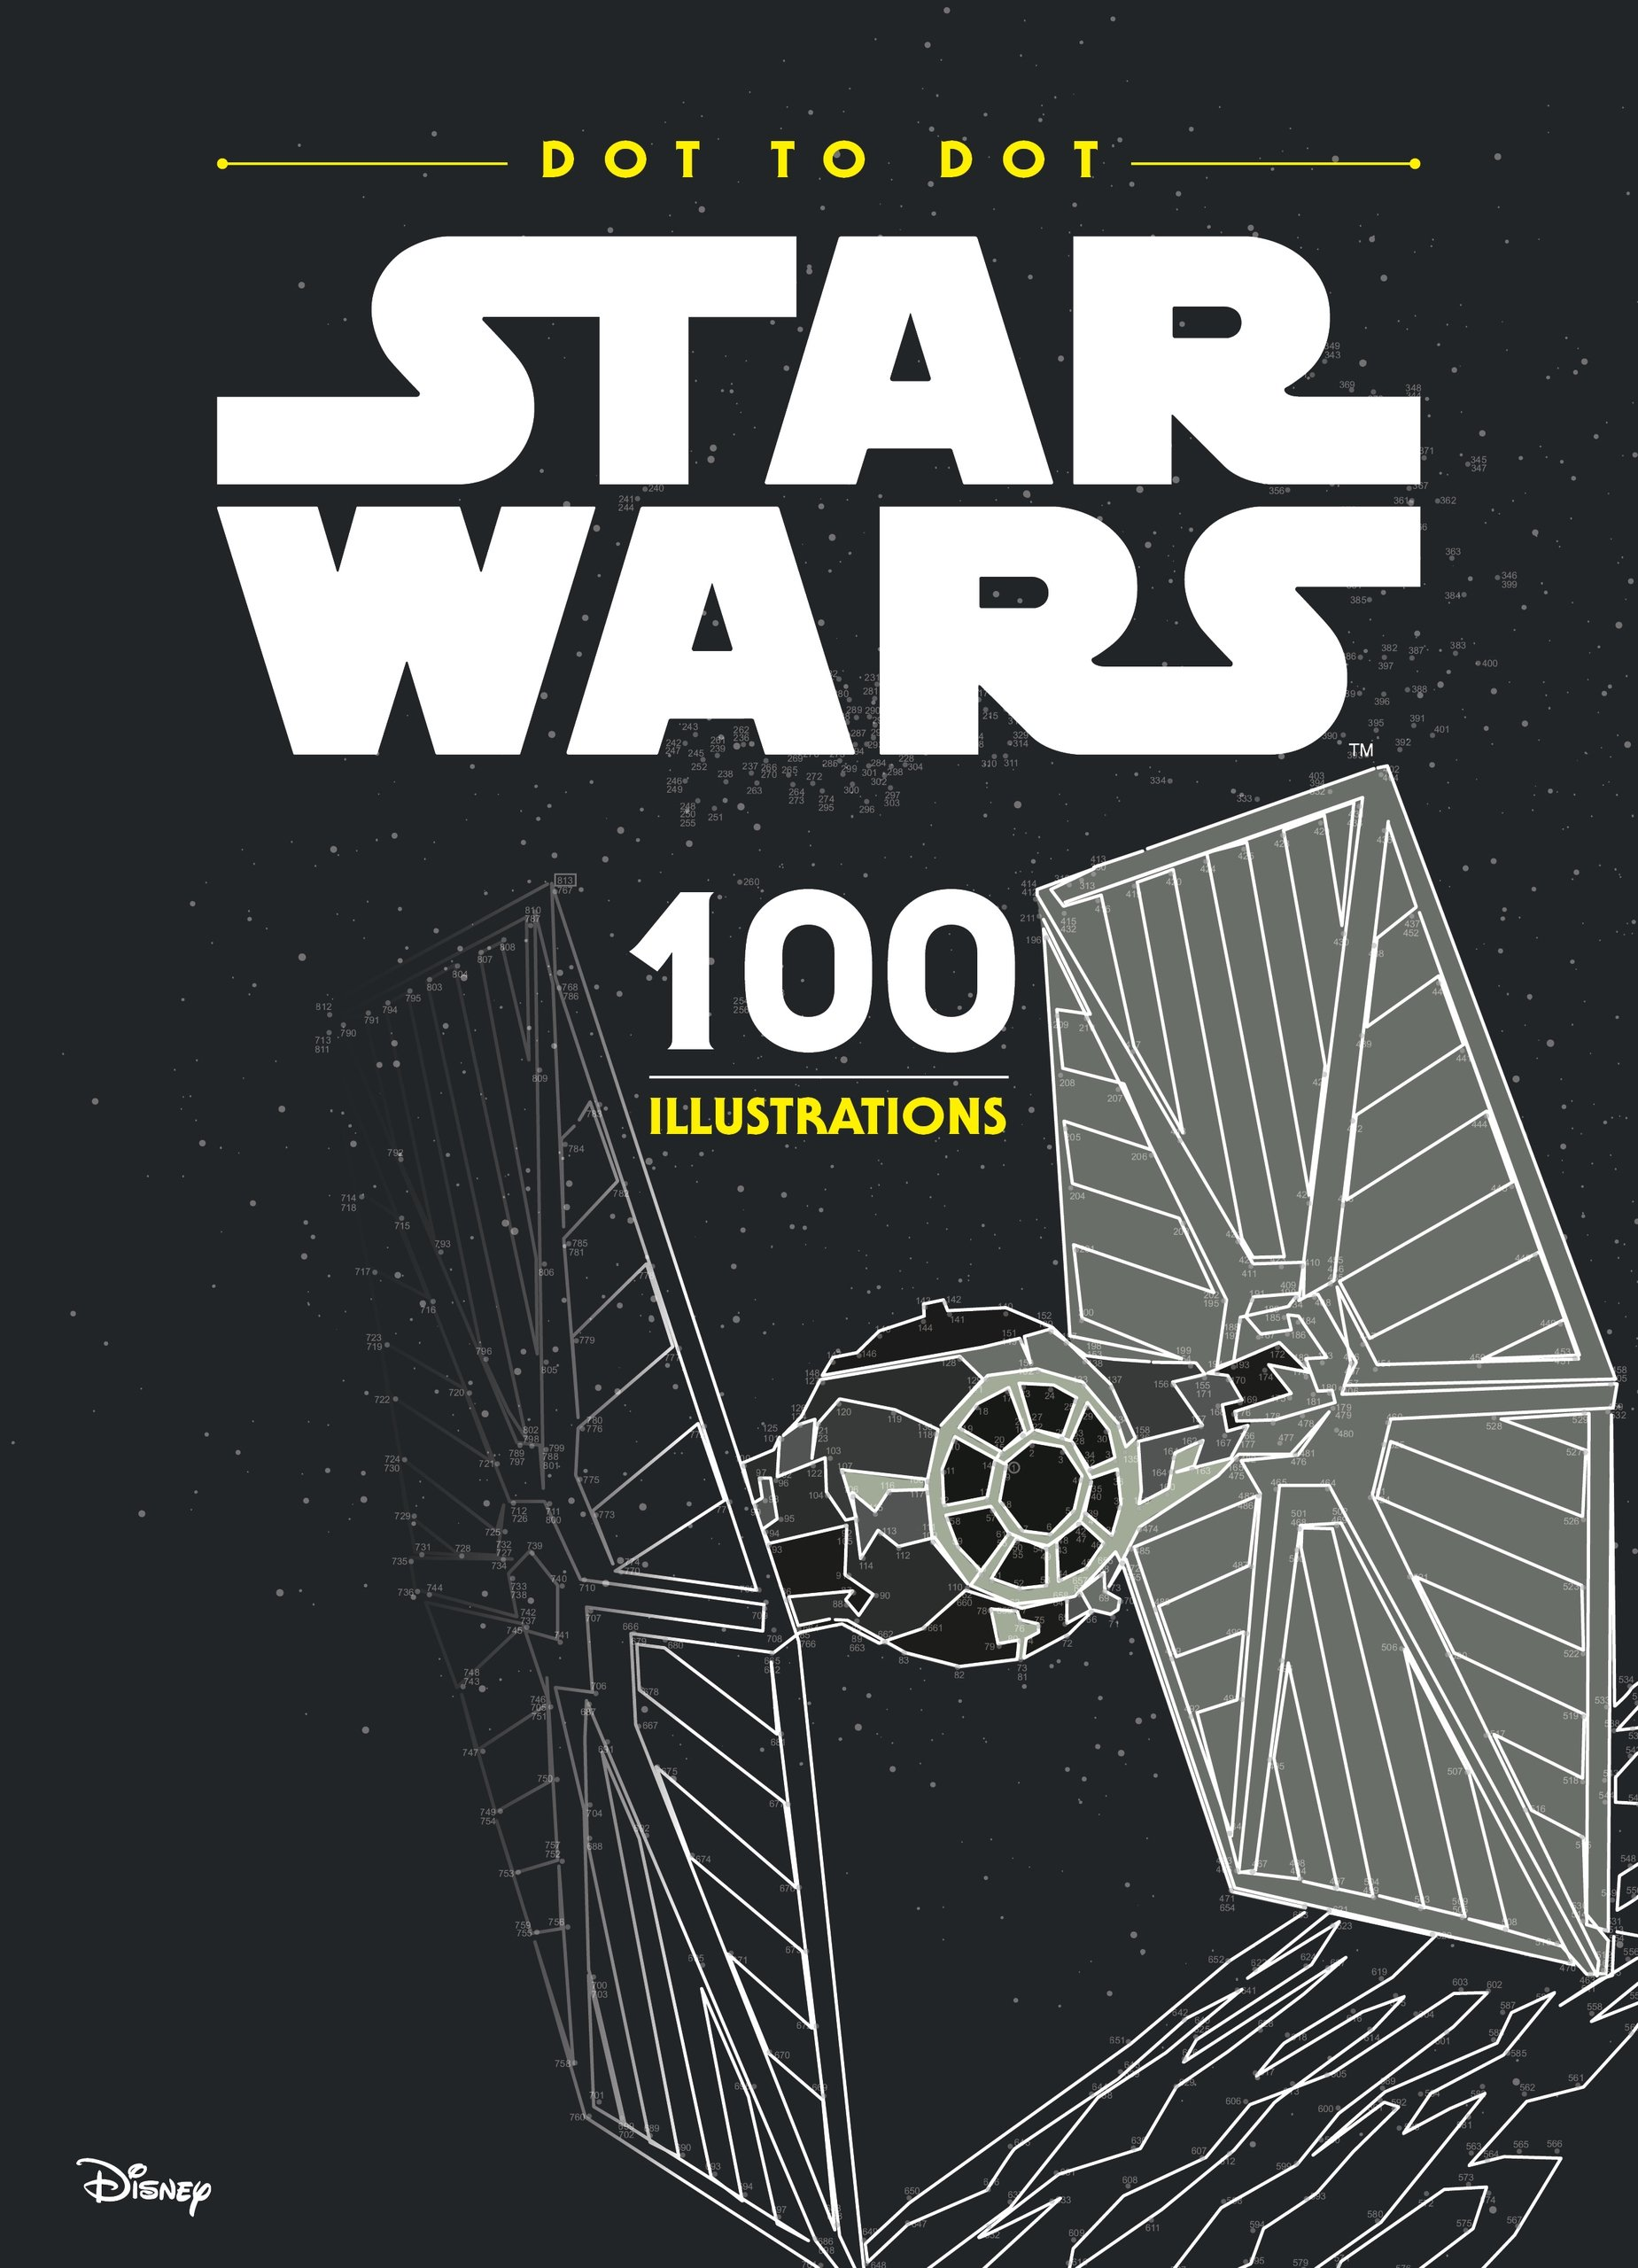 Star Wars Dot-to-Dot: 100 Illustrations